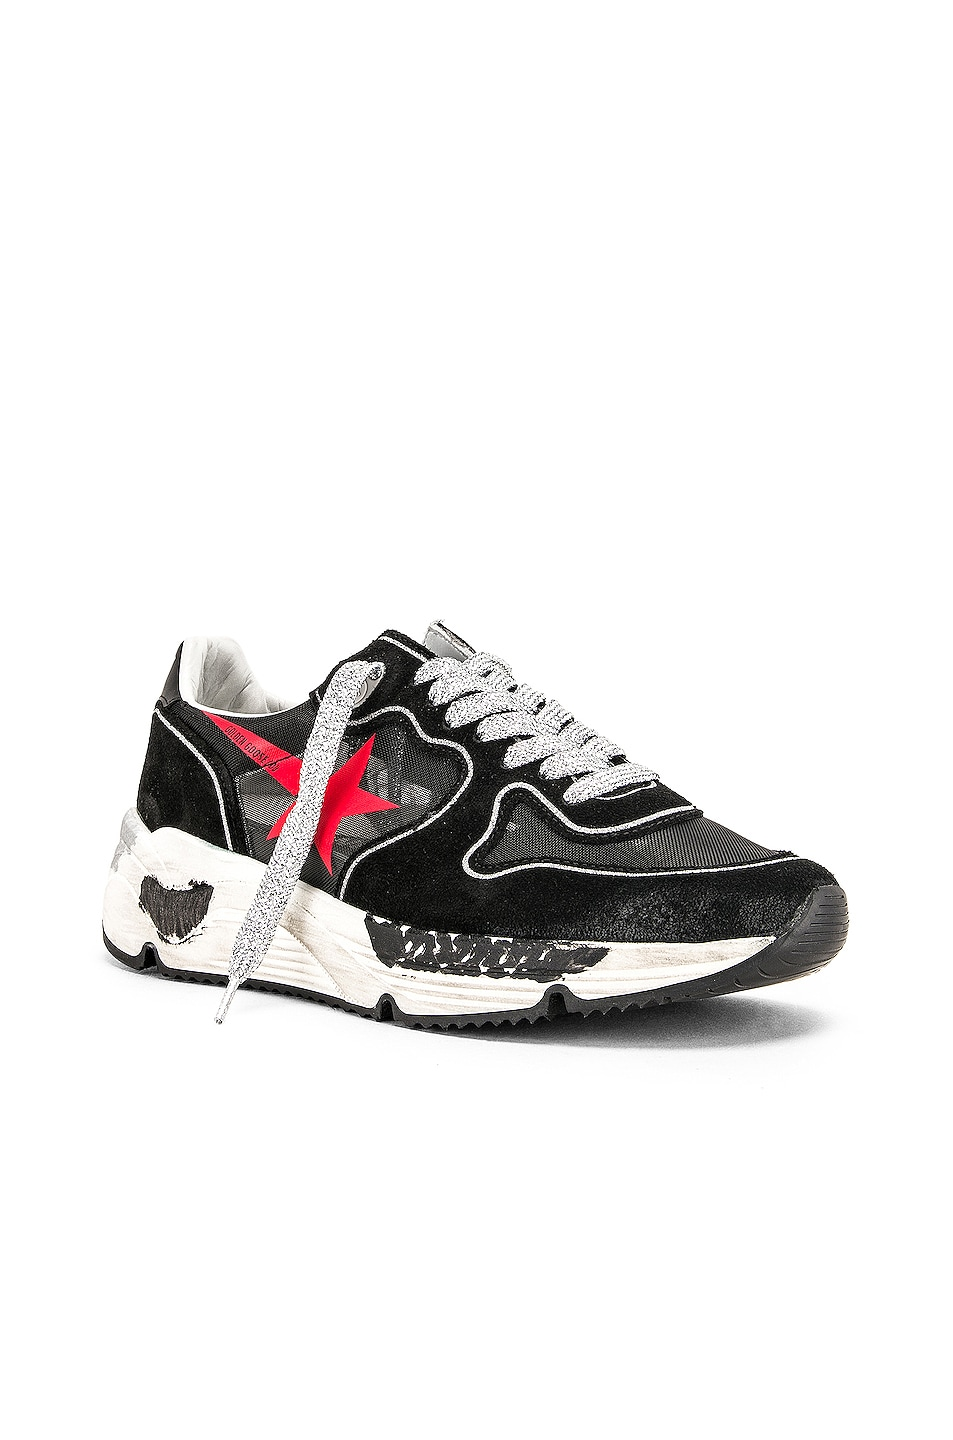 Image 2 of Golden Goose Running Sole Sneakers in Black & Red Star